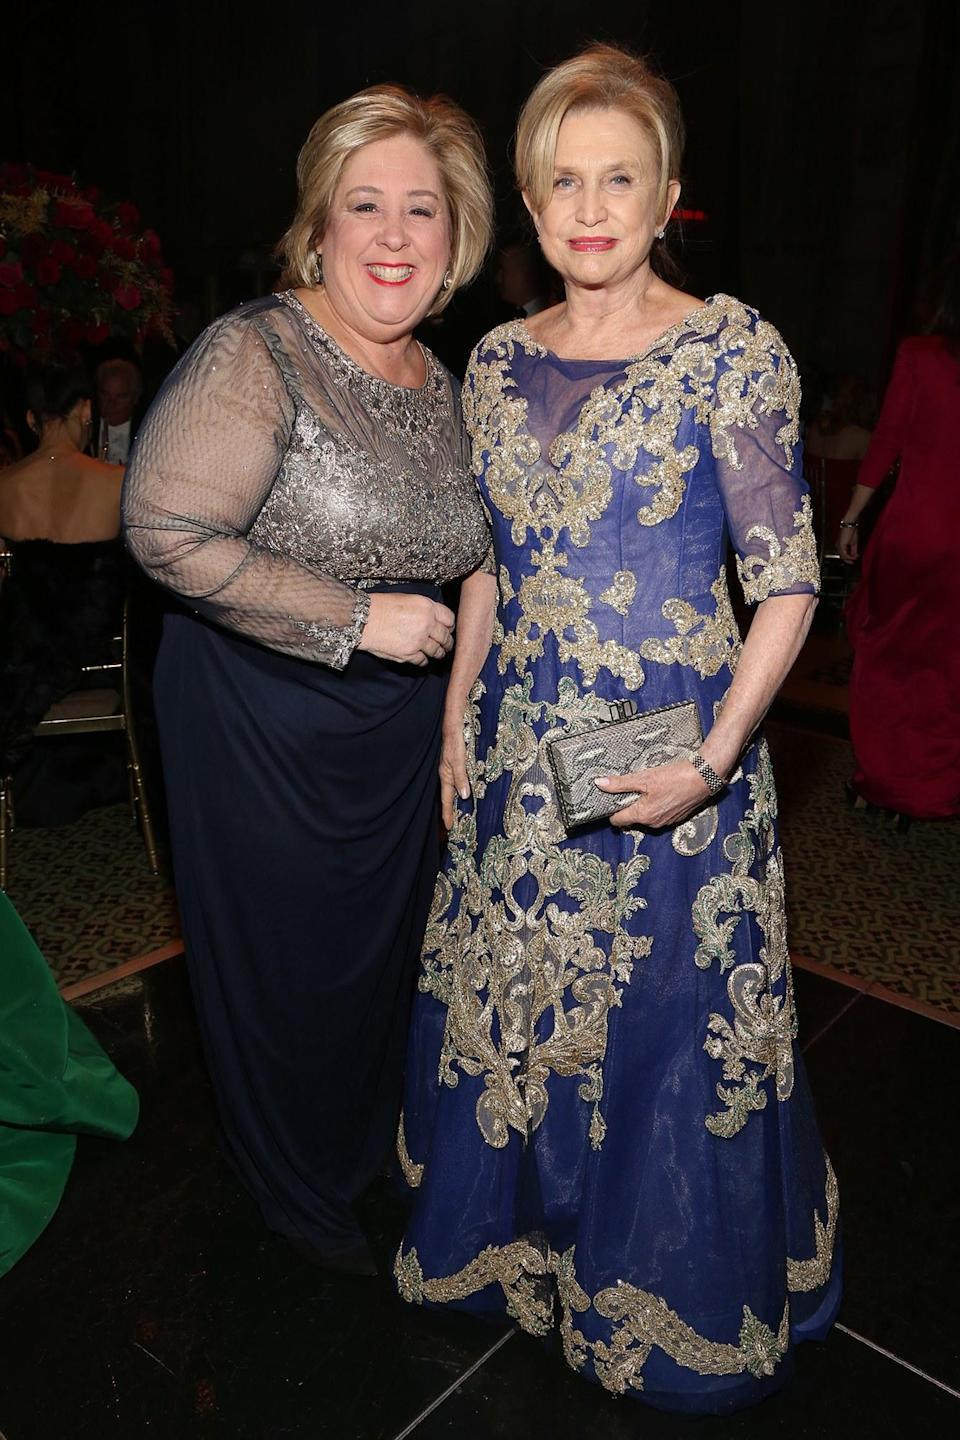 Now in its 64th year, the New York edition of the Opera Ball is said to be the oldest white-tie charity gala in Manhattan.